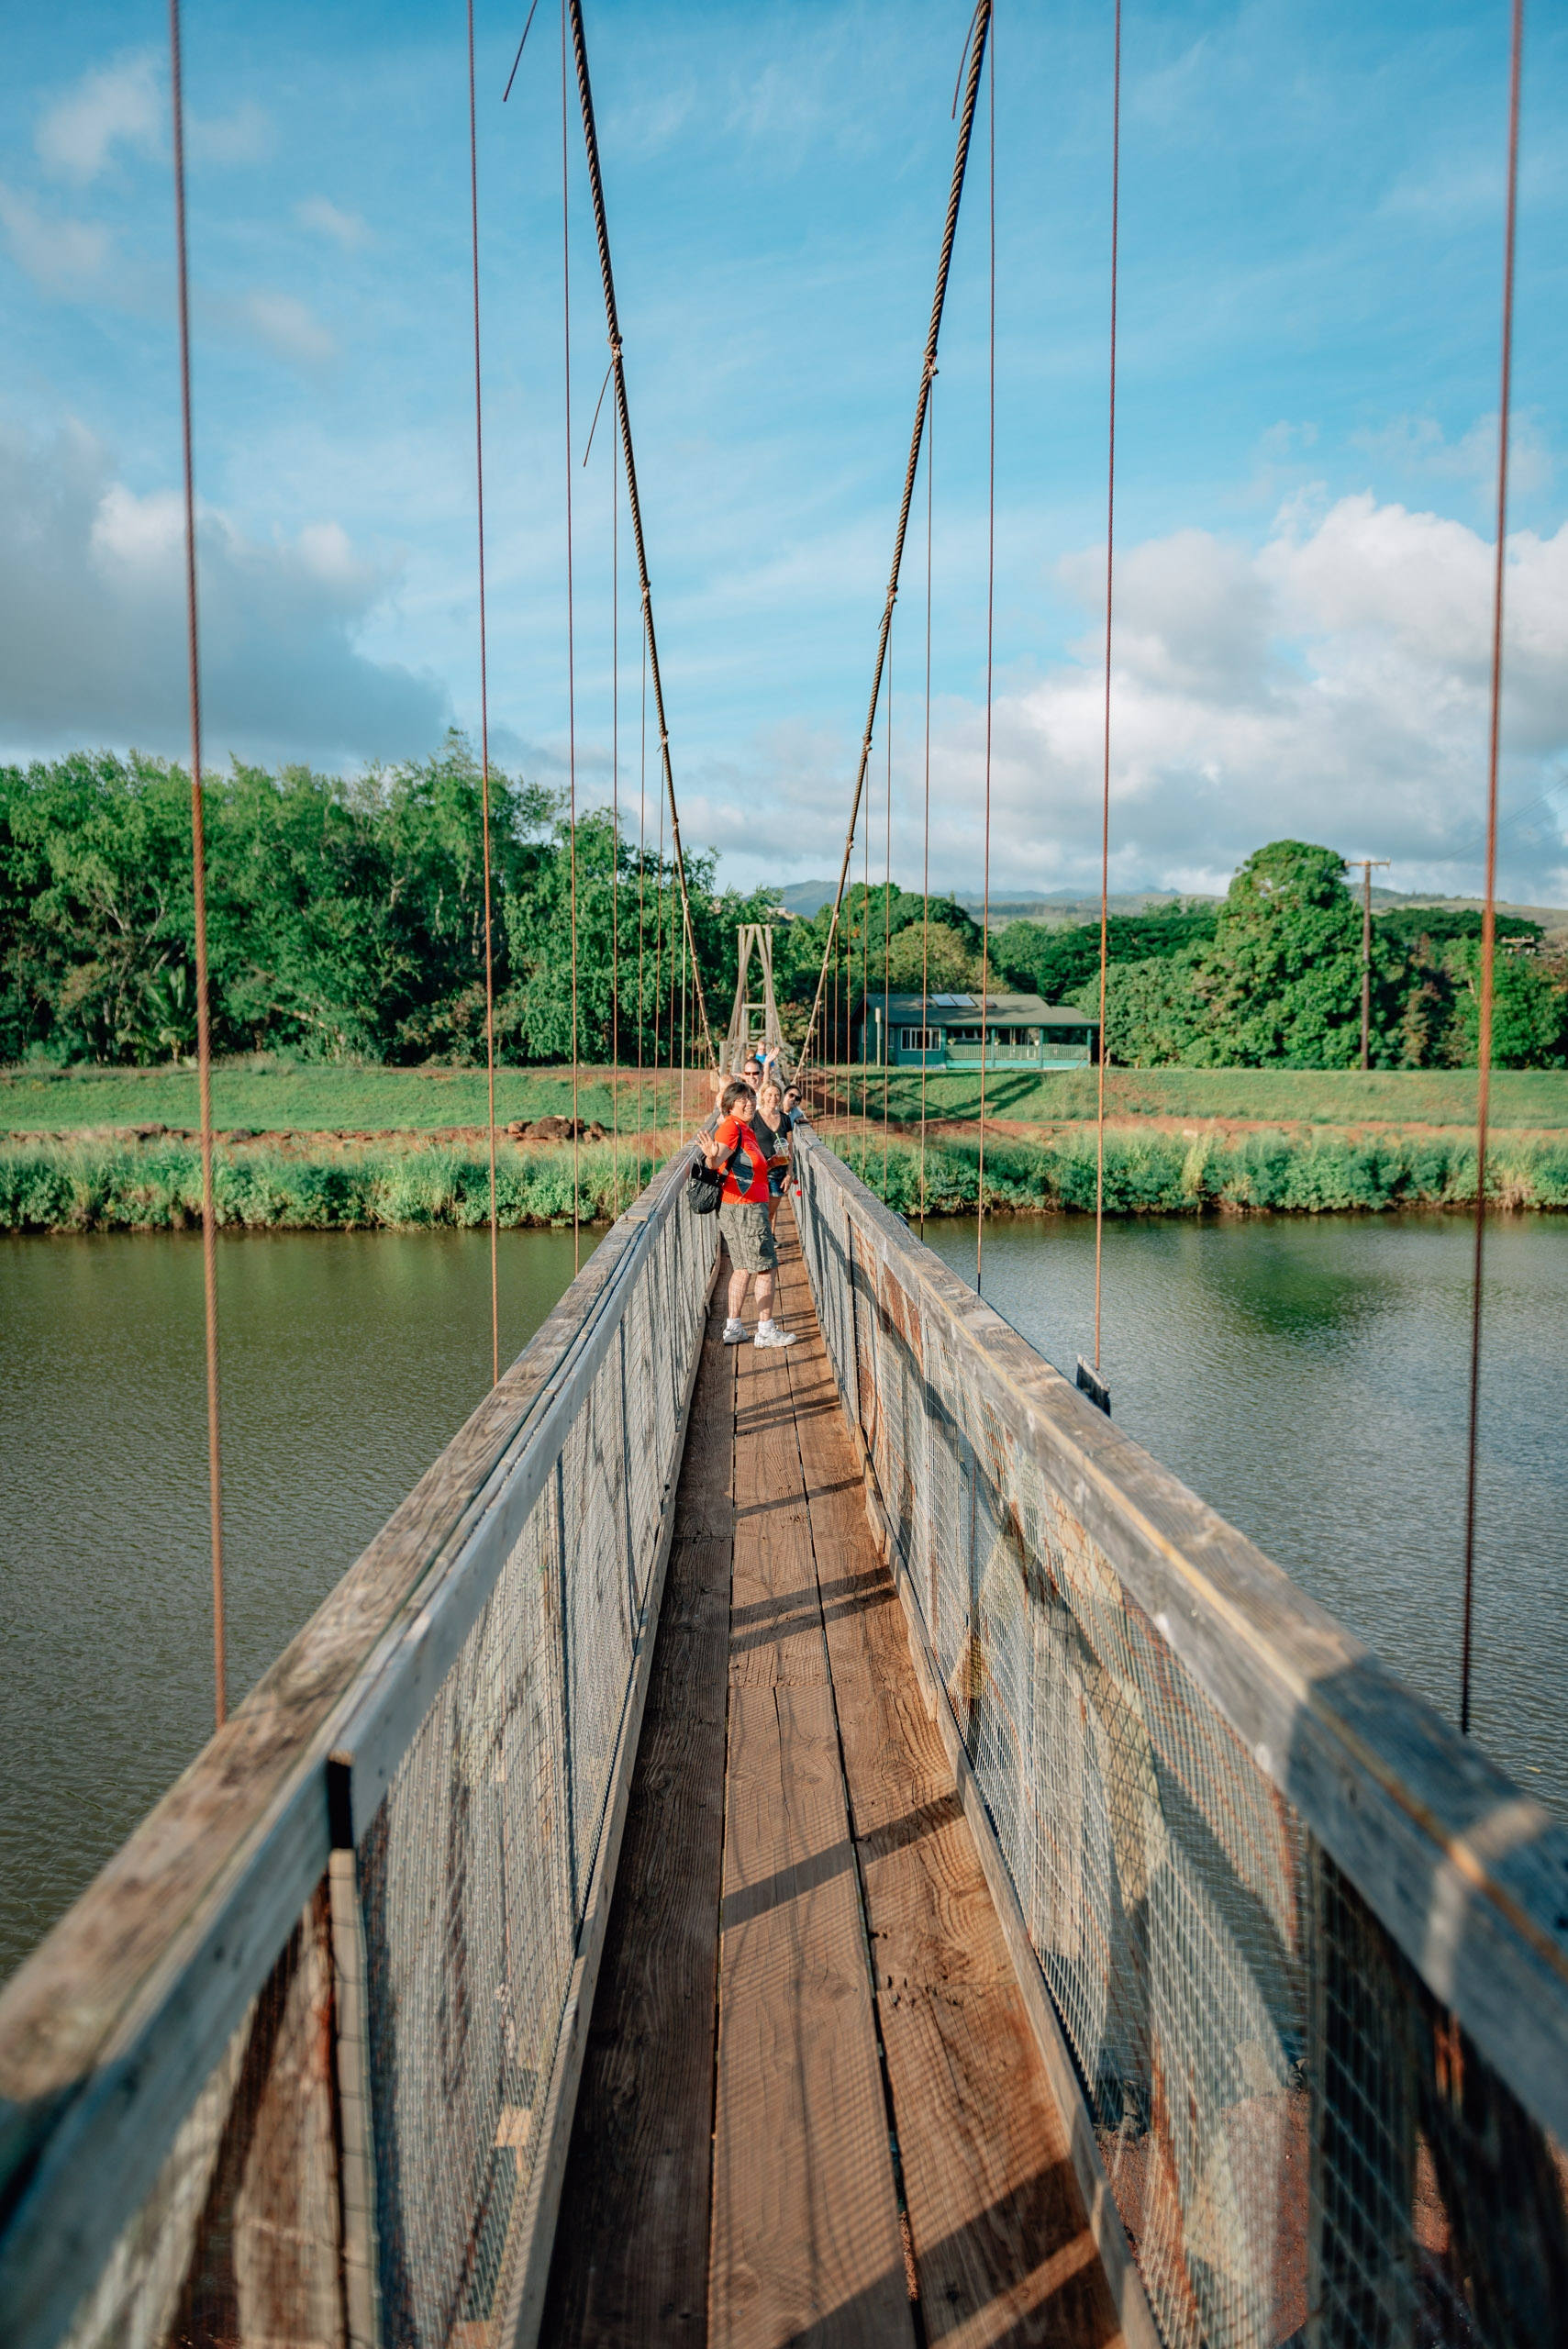 On the Hanapepe Swinging Bridge